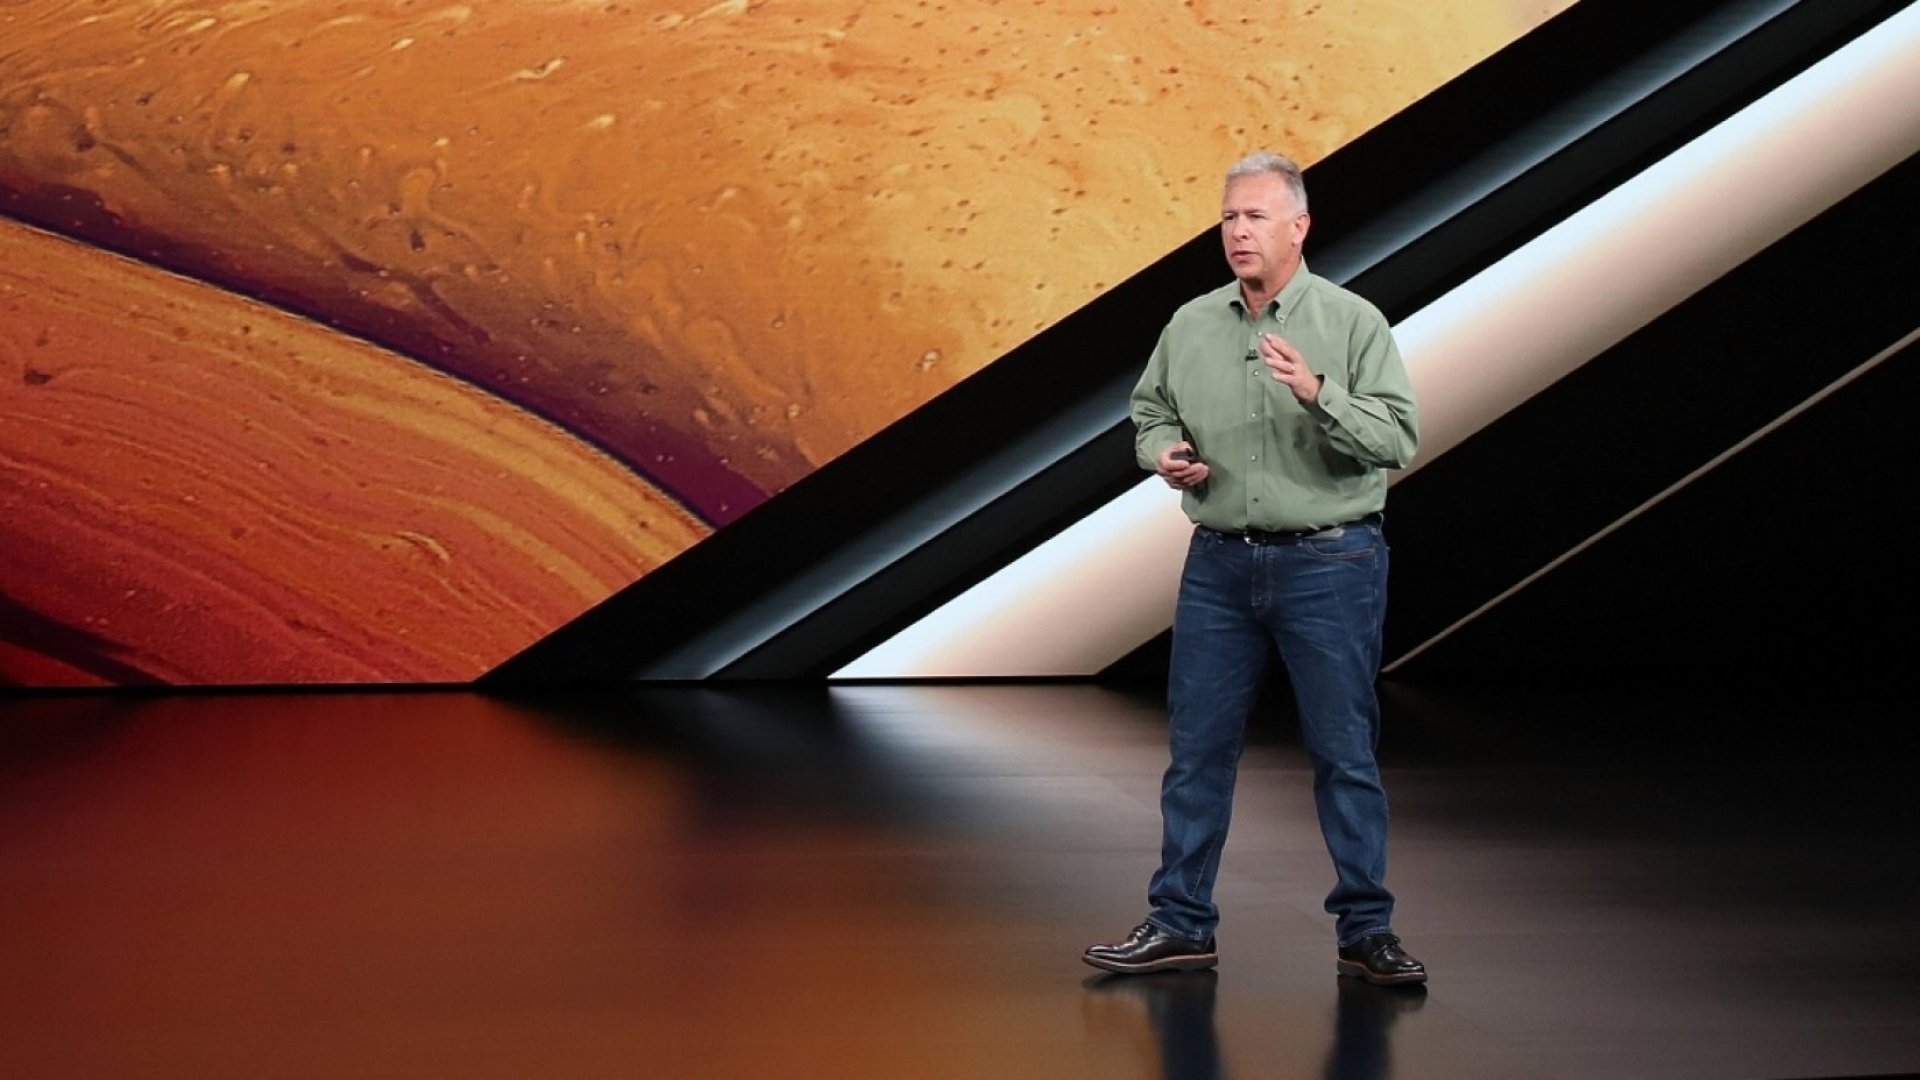 Phil Schiller, senior vice president of worldwide marketing at Apple Inc., speaks at an Apple event at the Steve Jobs Theater at Apple Park on September 12, 2018